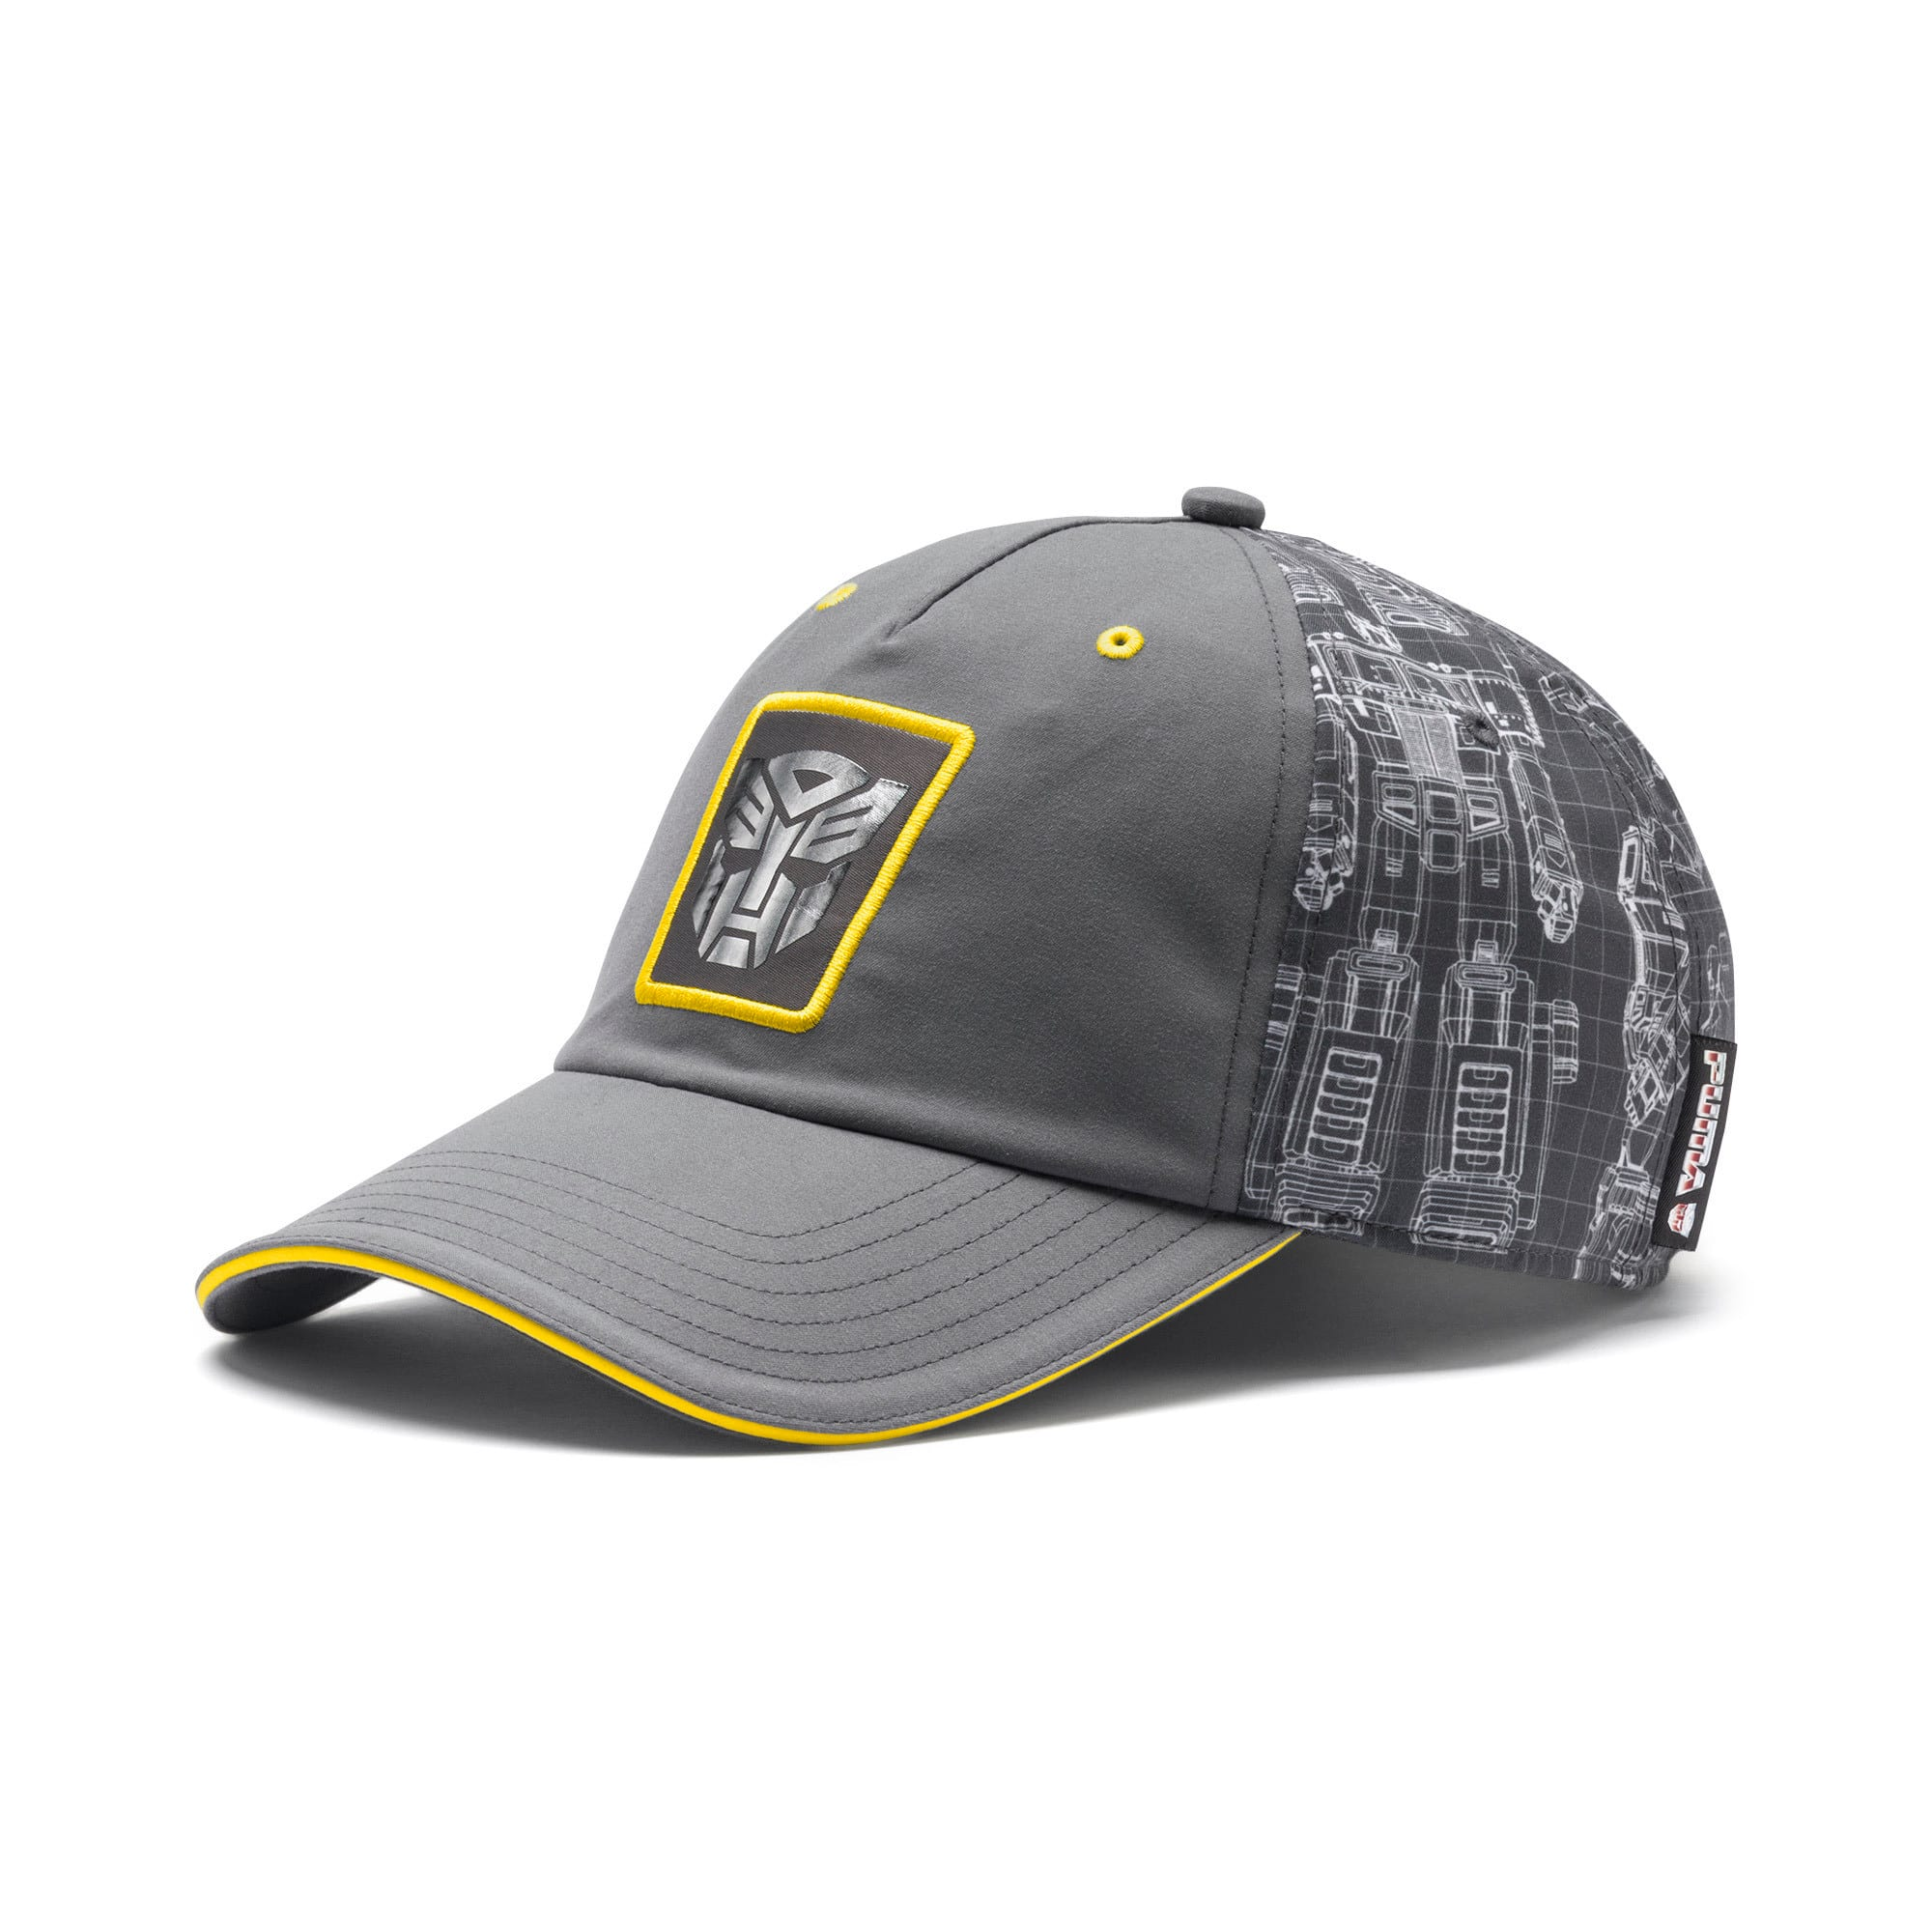 Thumbnail 1 of PUMA x TRANSFORMERS baseball-pet, QUIET SHADE-Cyber Yellow, medium